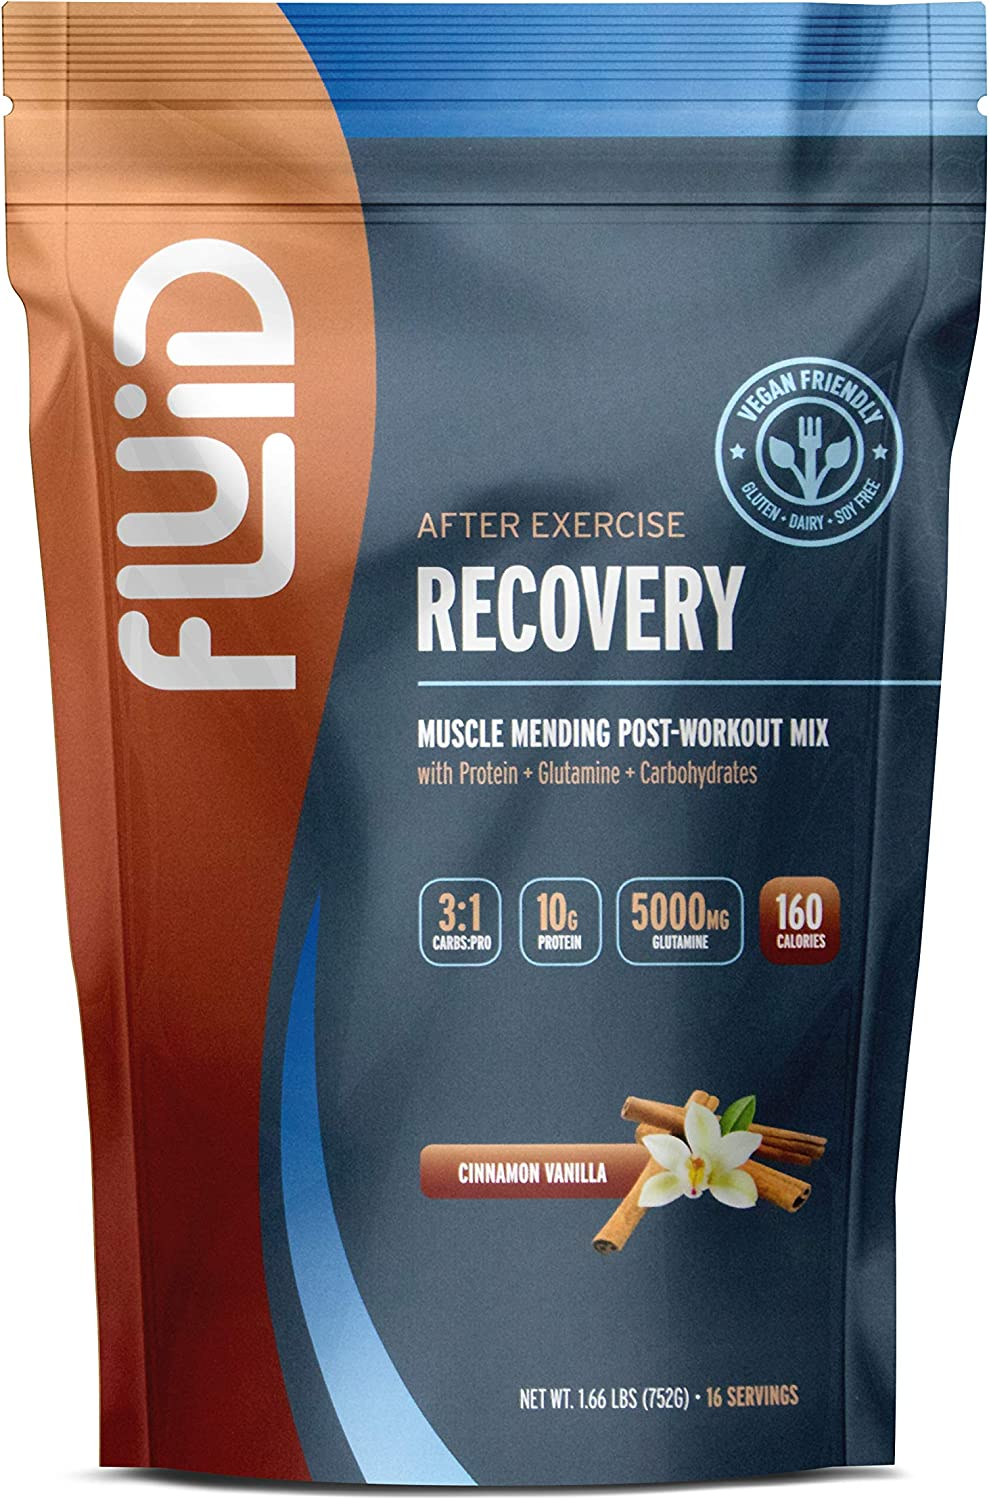 Fluid Recovery Post-Workout Drink Mix, Whey Isolate Protein, All Natural Ingredients, Gluten-Free, Lactose-Free